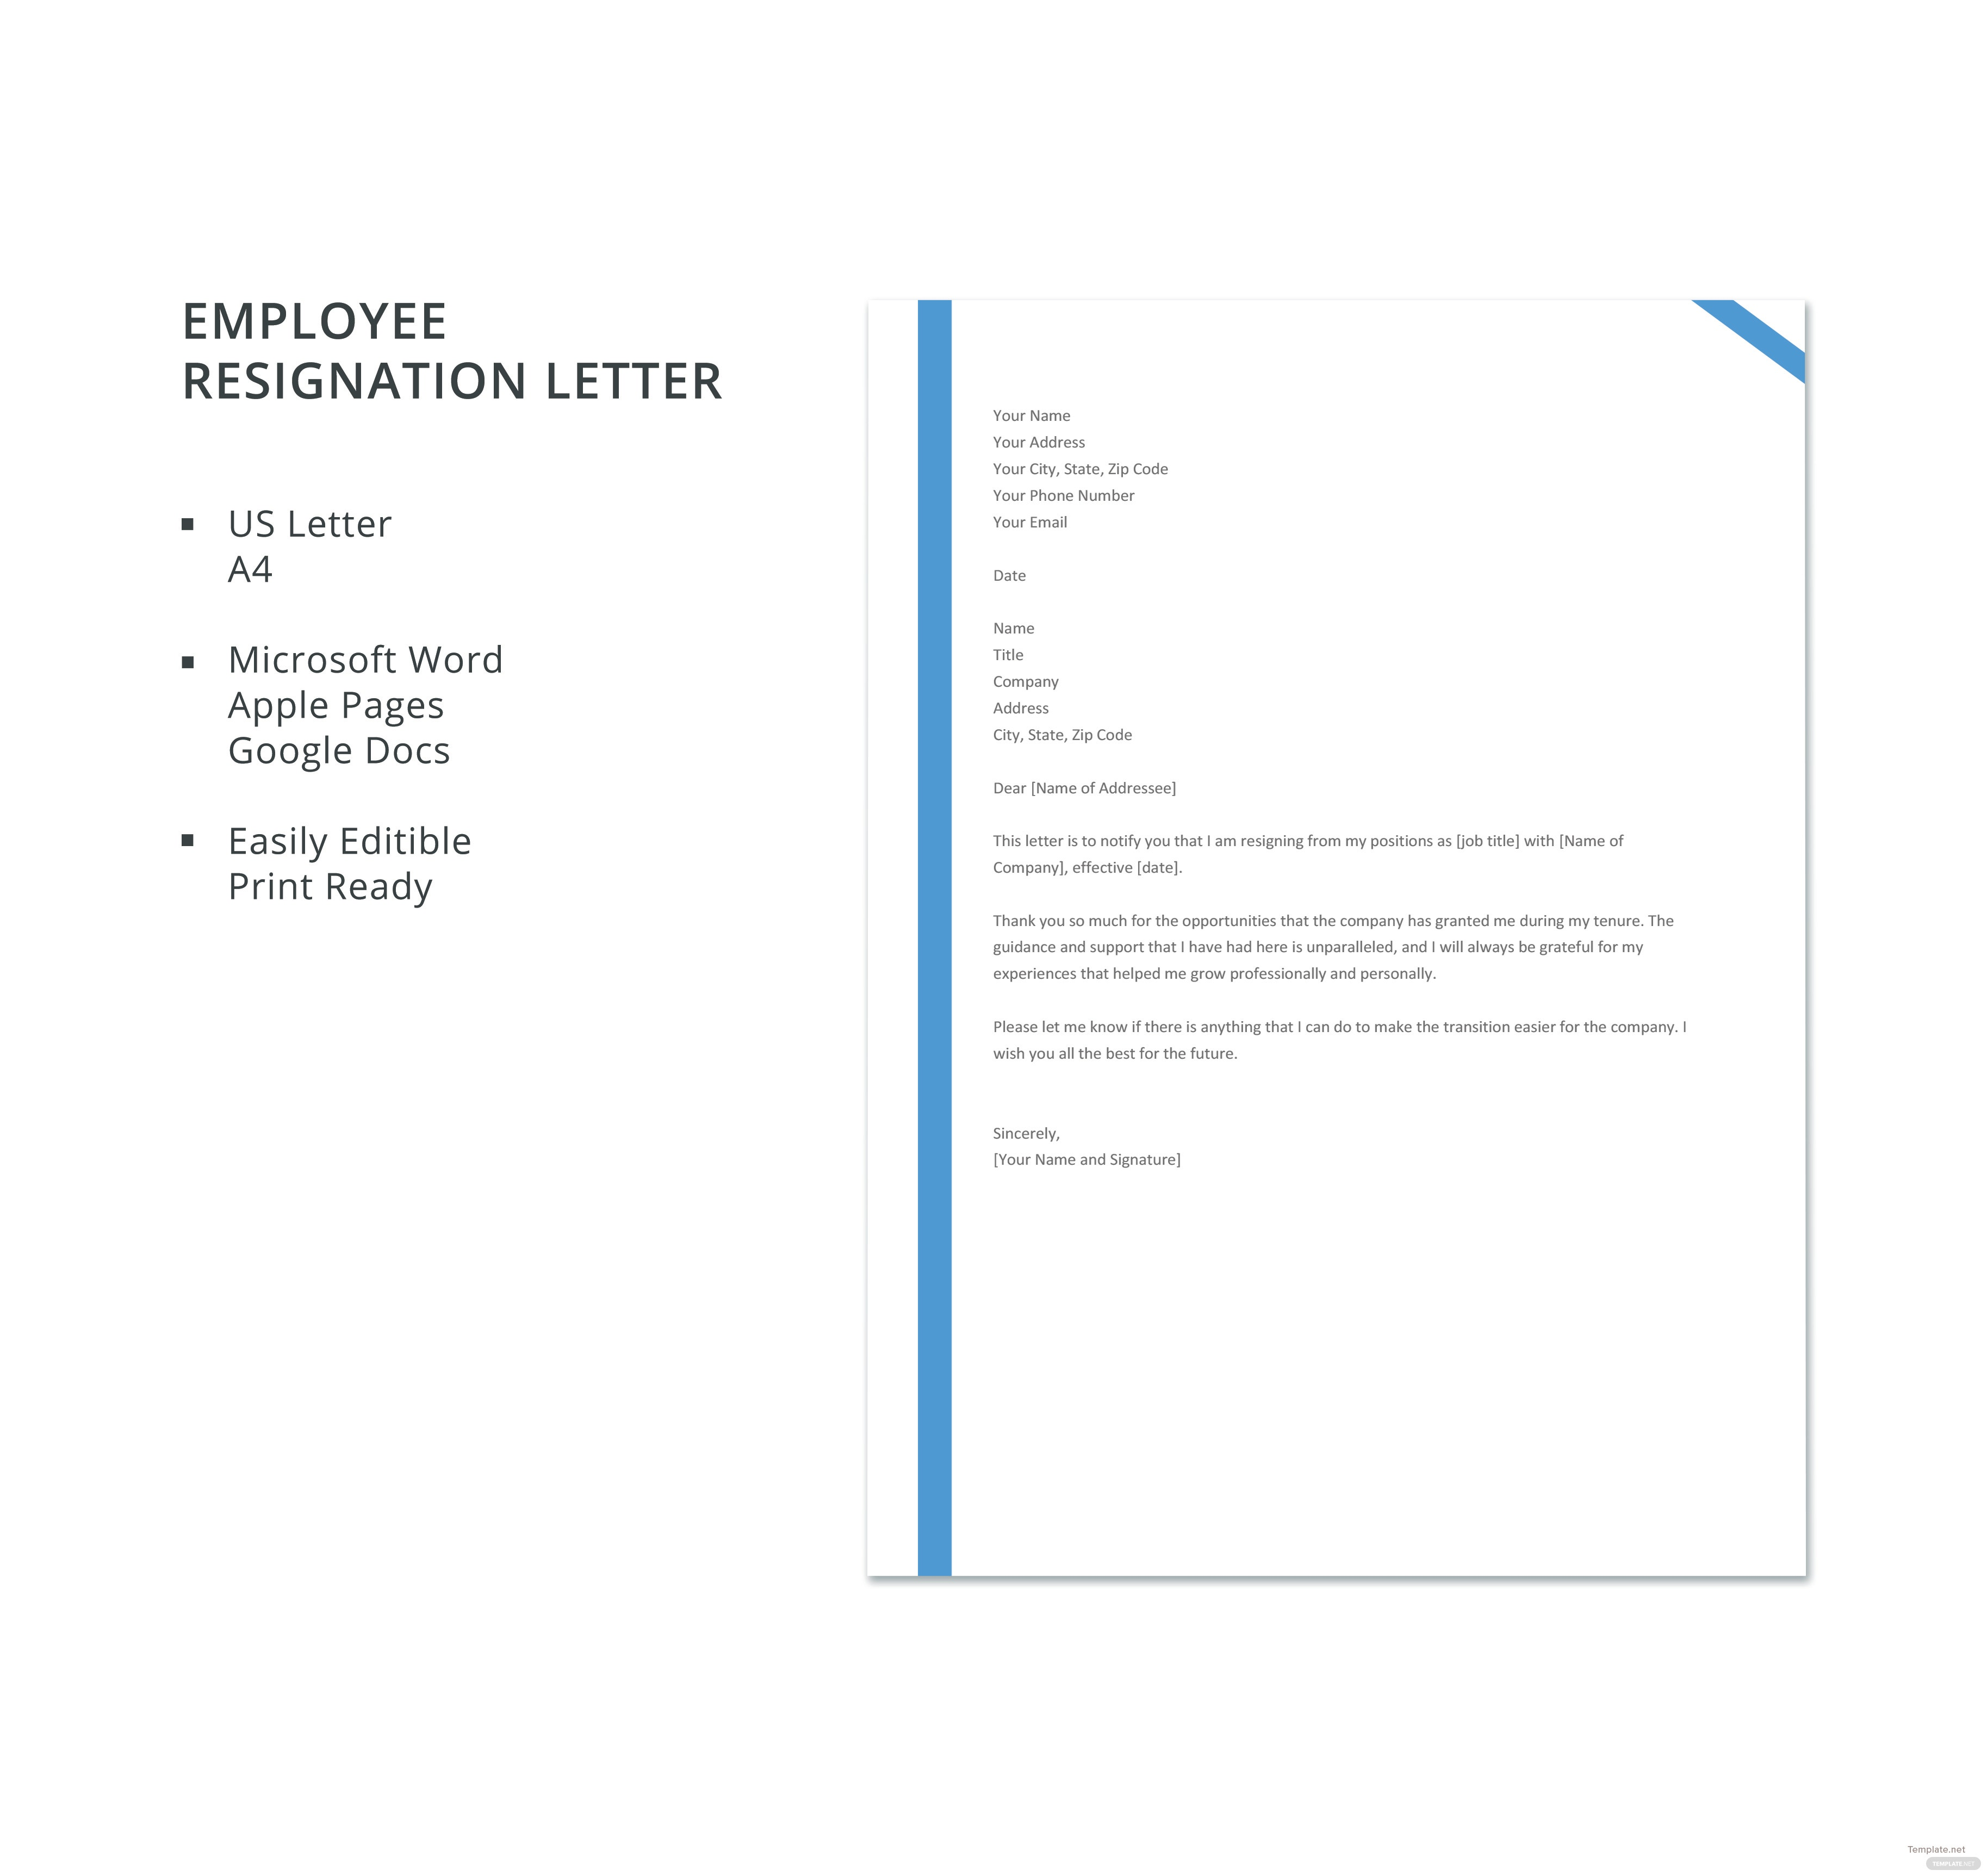 Free employee resignation letter template in microsoft word apple employee resignation letter template spiritdancerdesigns Images